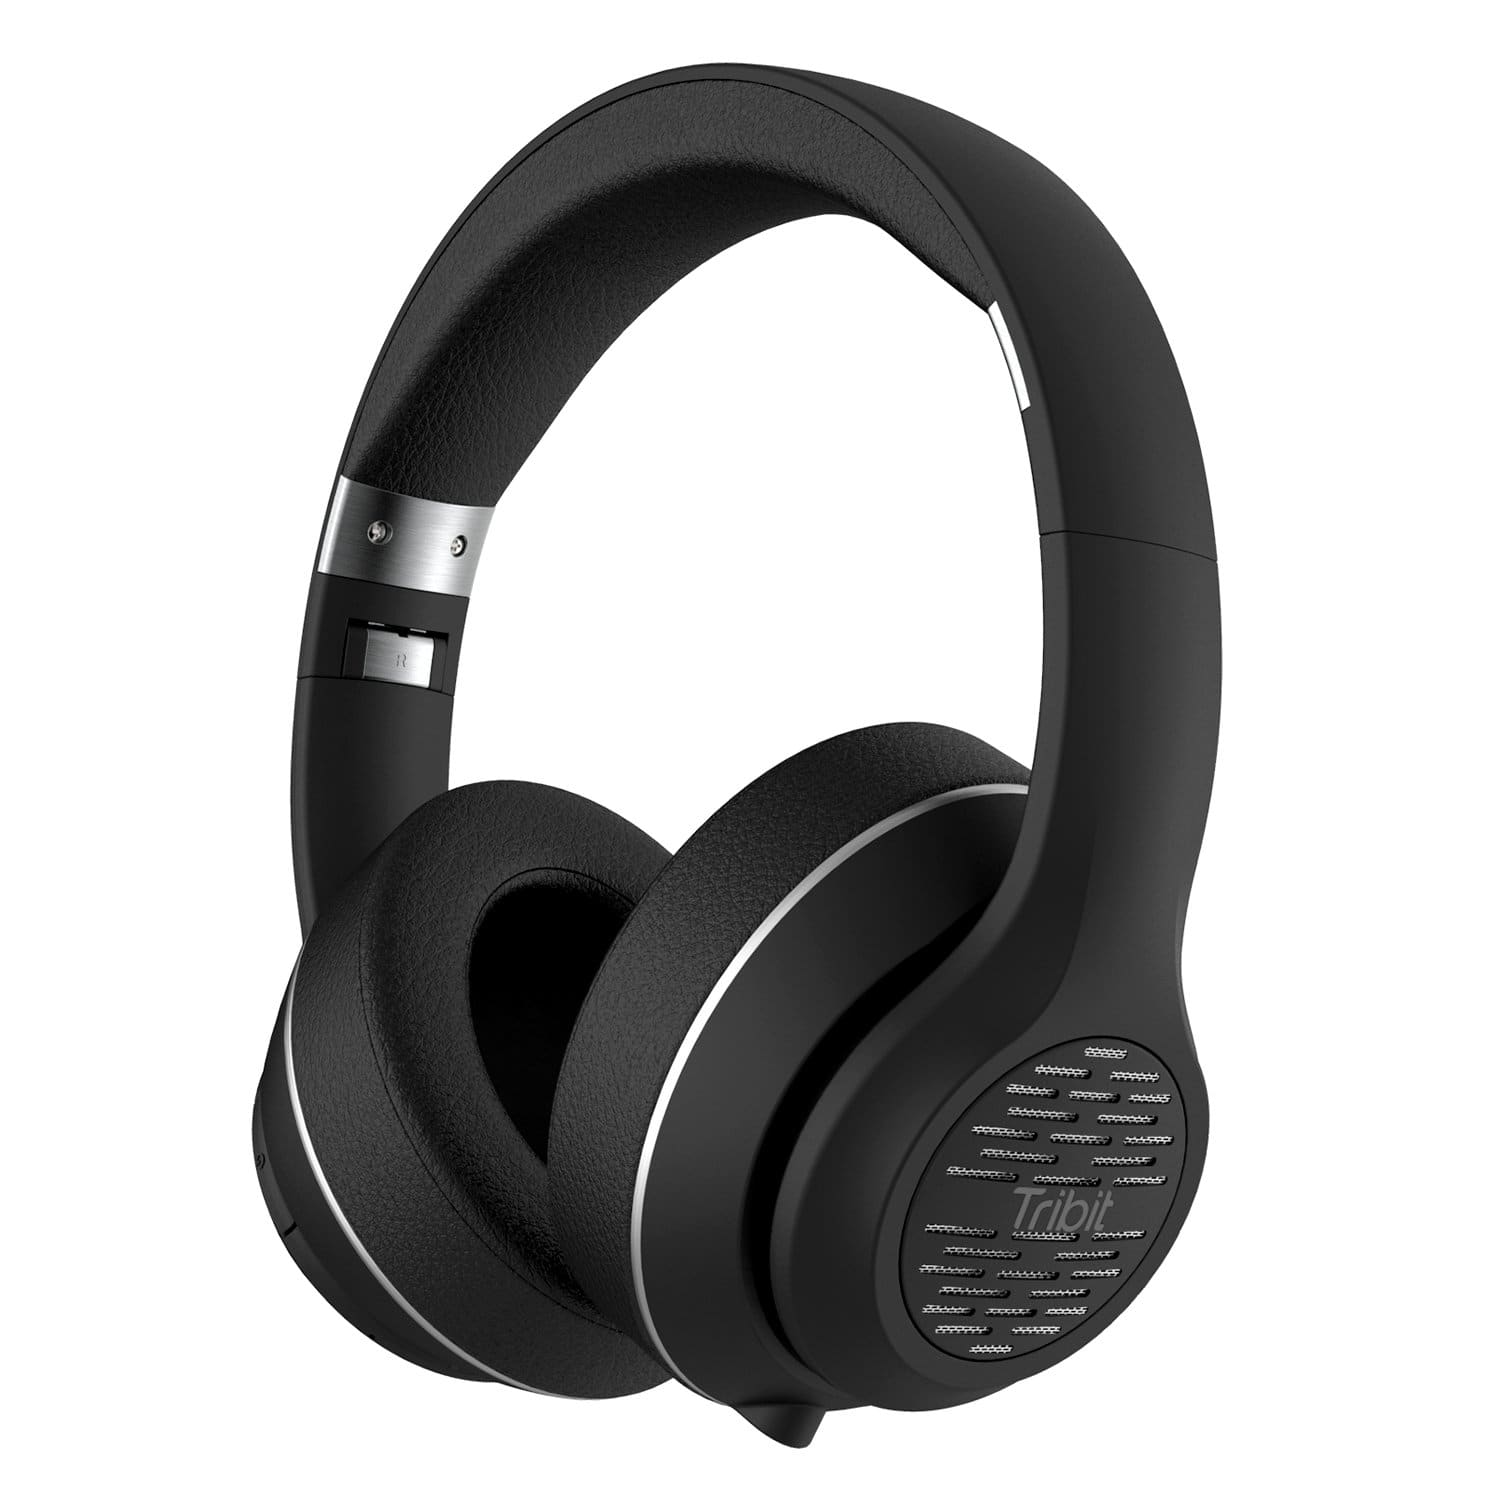 Tribit XFree Tune Bluetooth Headphones, 40h Playtime, Microphone & Foldable + Free Ship w/Prime - $26.34